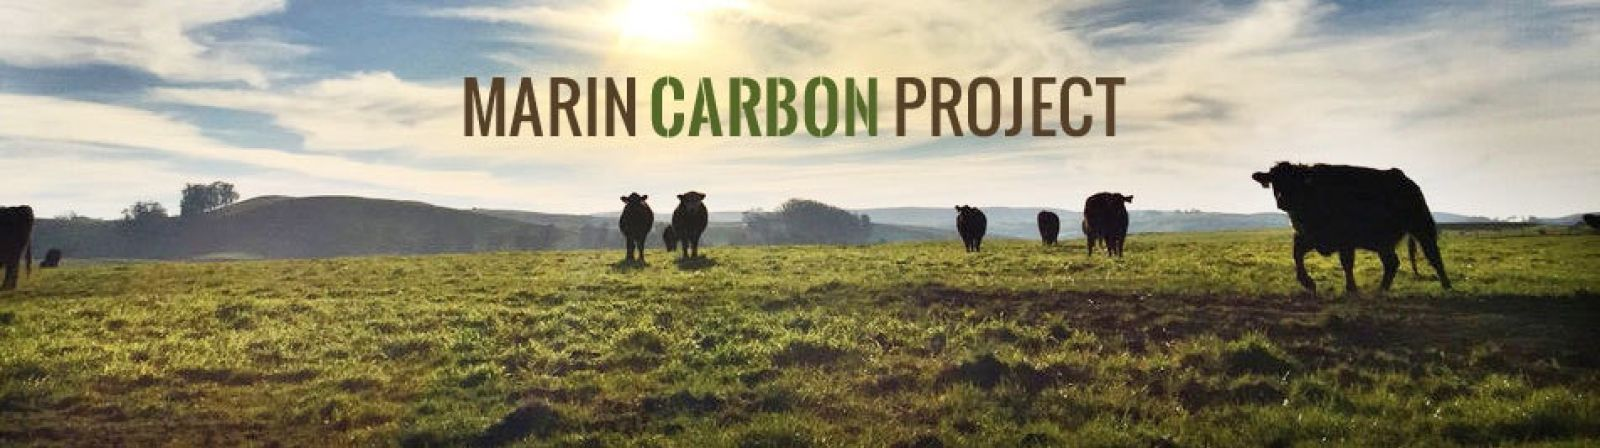 The Marin Carbon Project